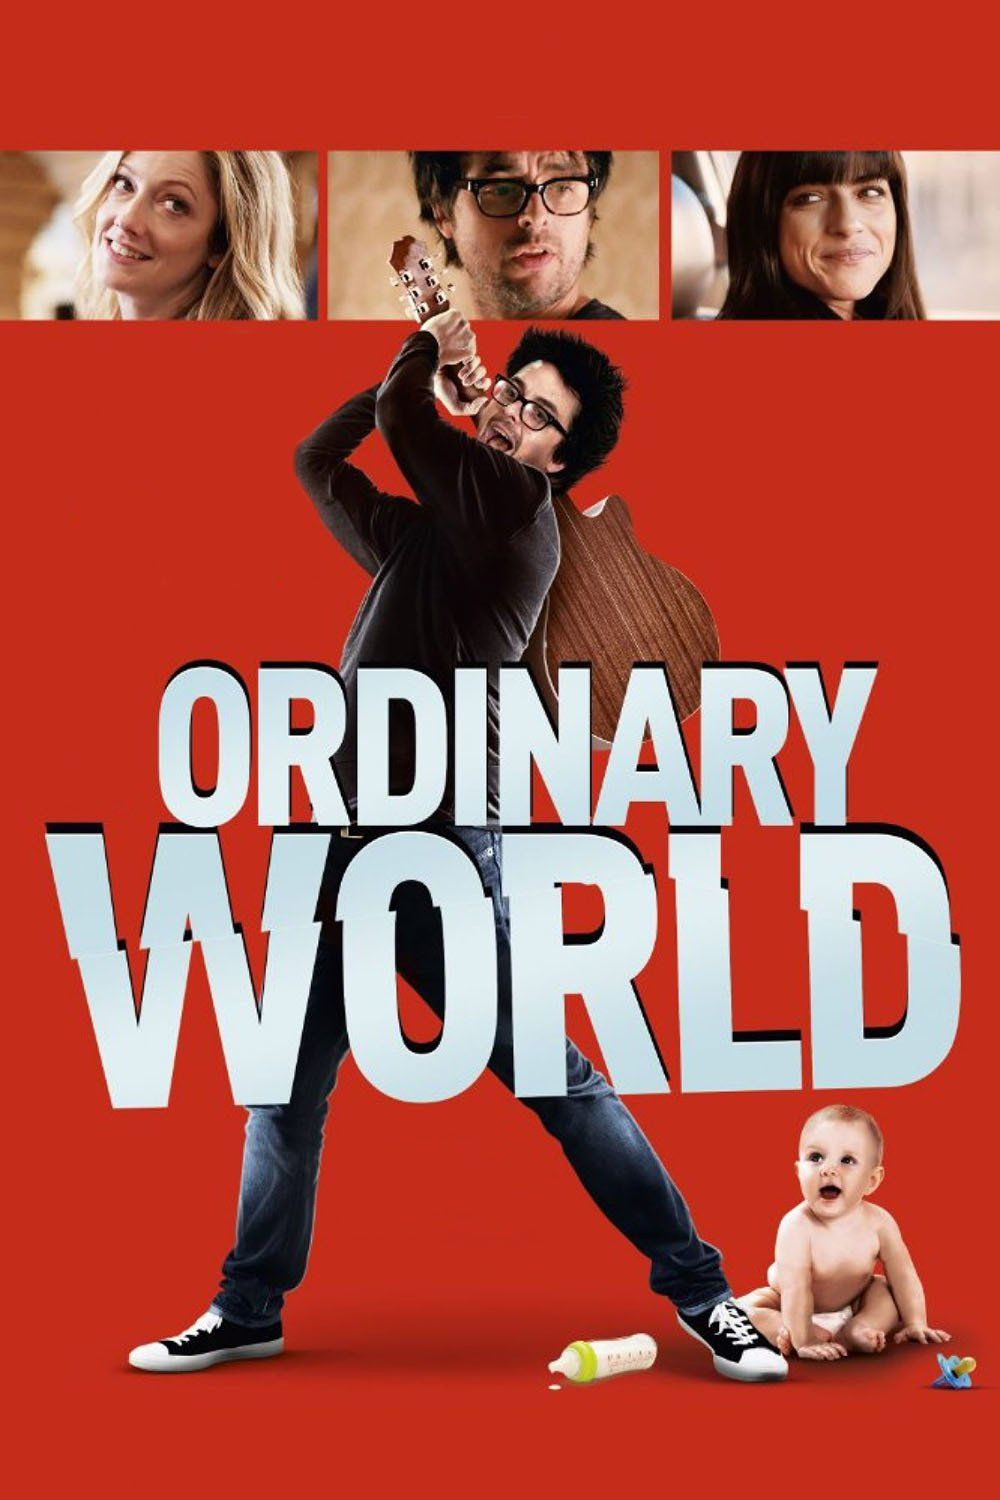 Ordinary World Watch Online Free Only At Movieboxd 100 Ad Free No Registration Or Credit Card Needed Billie Joe Armstrong Green Day Billie Joe Joe Armstrong